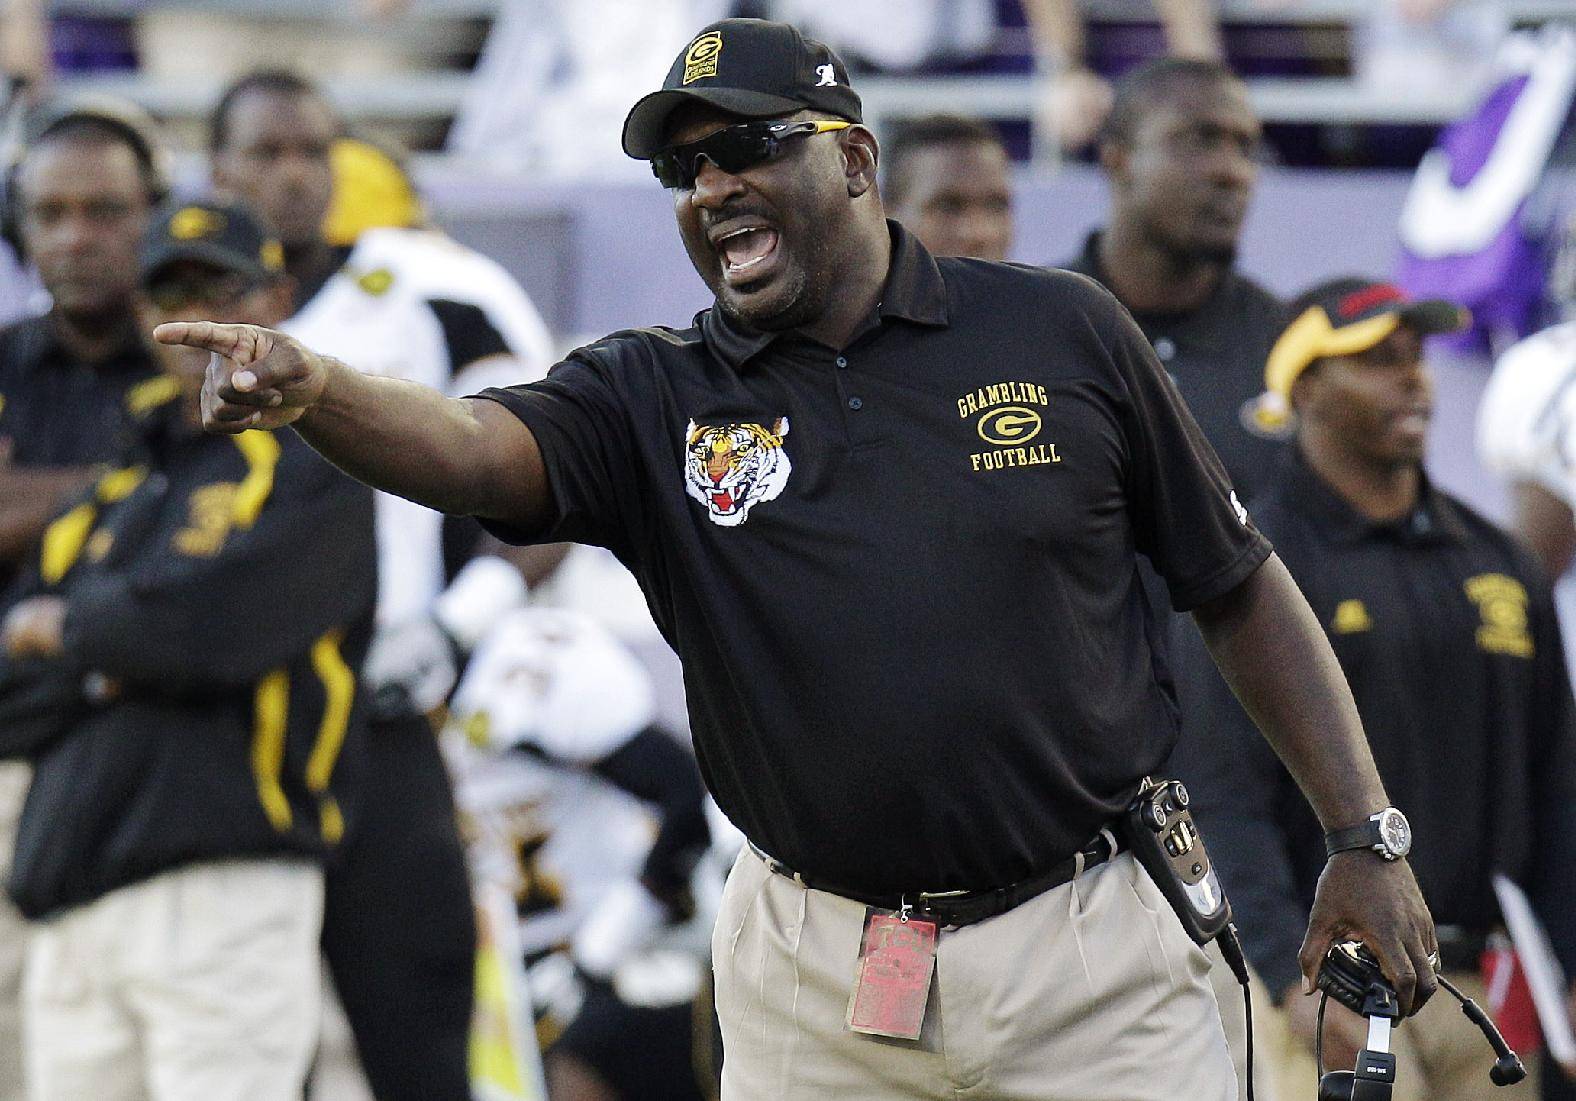 In this Sept. 8, 2012, file photo, Grambling State coach Doug Williams yells from the sideline during an NCAA college football game against TCU in Fort Worth, Texas. Williams was fired two games into the 2013 season, despite a 61-34 record and four conference titles. He said he was given no reason for his dismissal. Grambling's season comes to an end Saturday, Nov. 30, against Southern University in the Bayou Classic in New Orleans